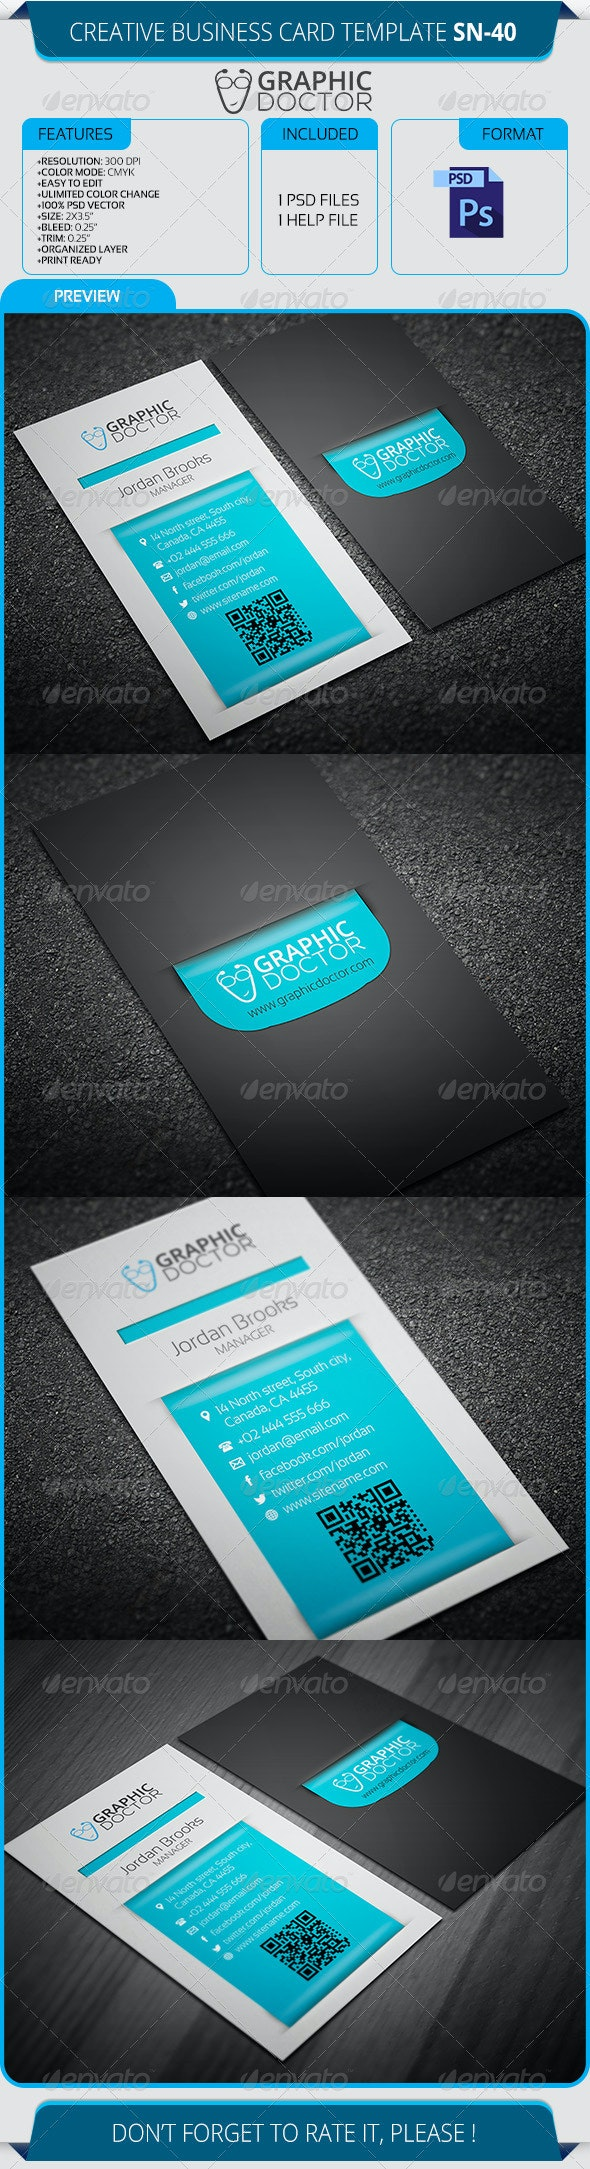 Creative Business Card Template SN-40 - Creative Business Cards